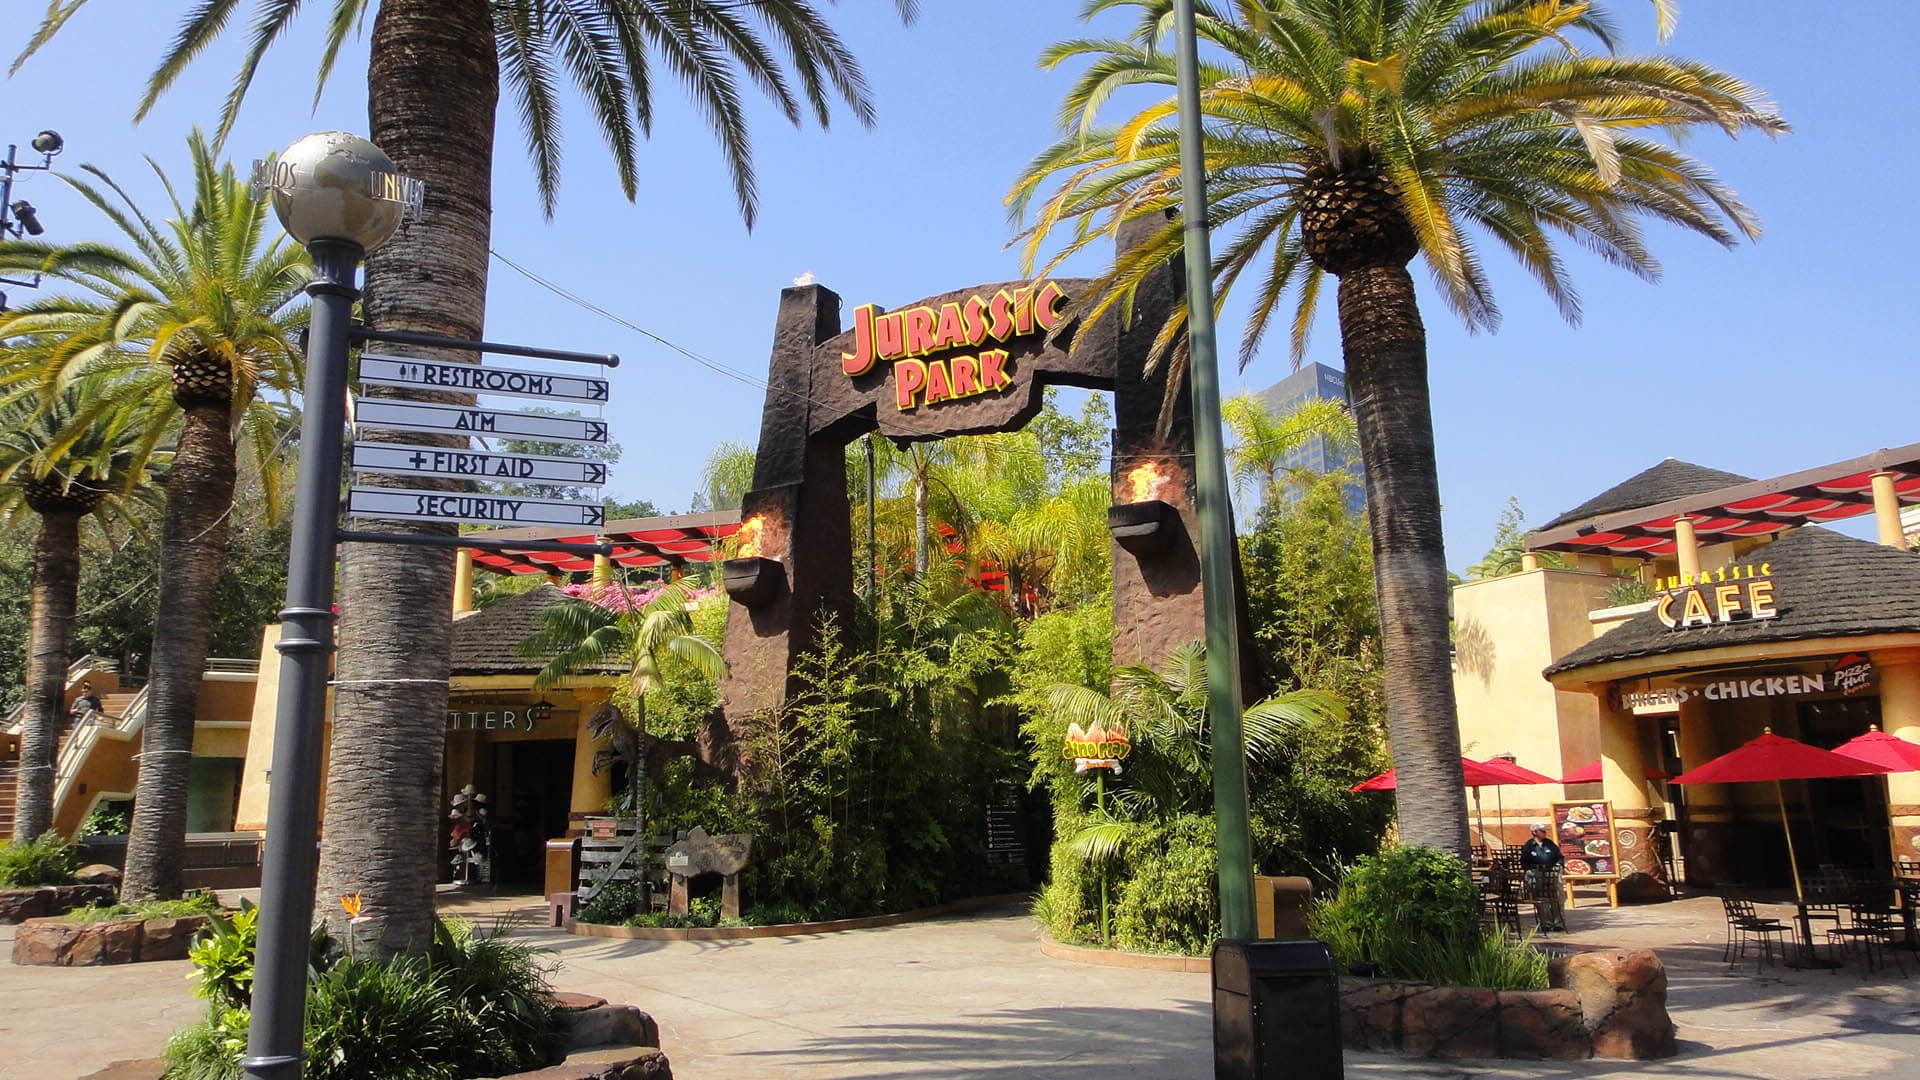 Best Time To Visit Universal Studios Hollywood - Jurrasic Park Gates